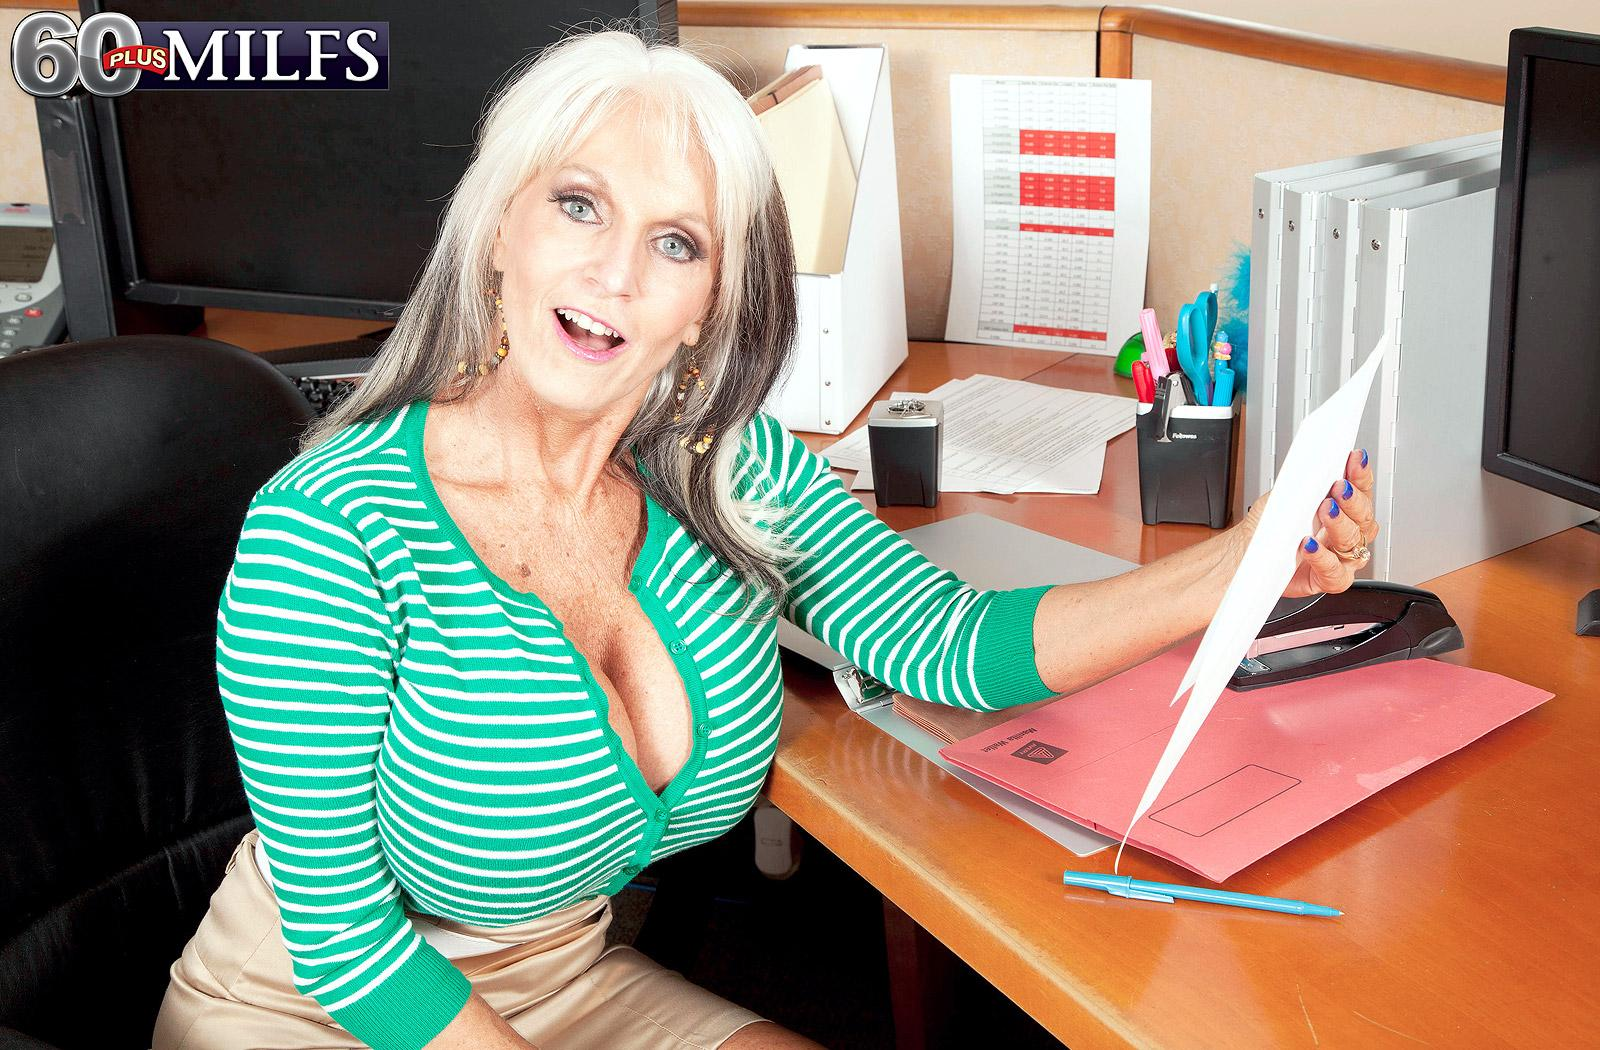 The horniest secretary ever - Sally D'Angelo (85 Photos) - 60 Plus MILFs picture 2